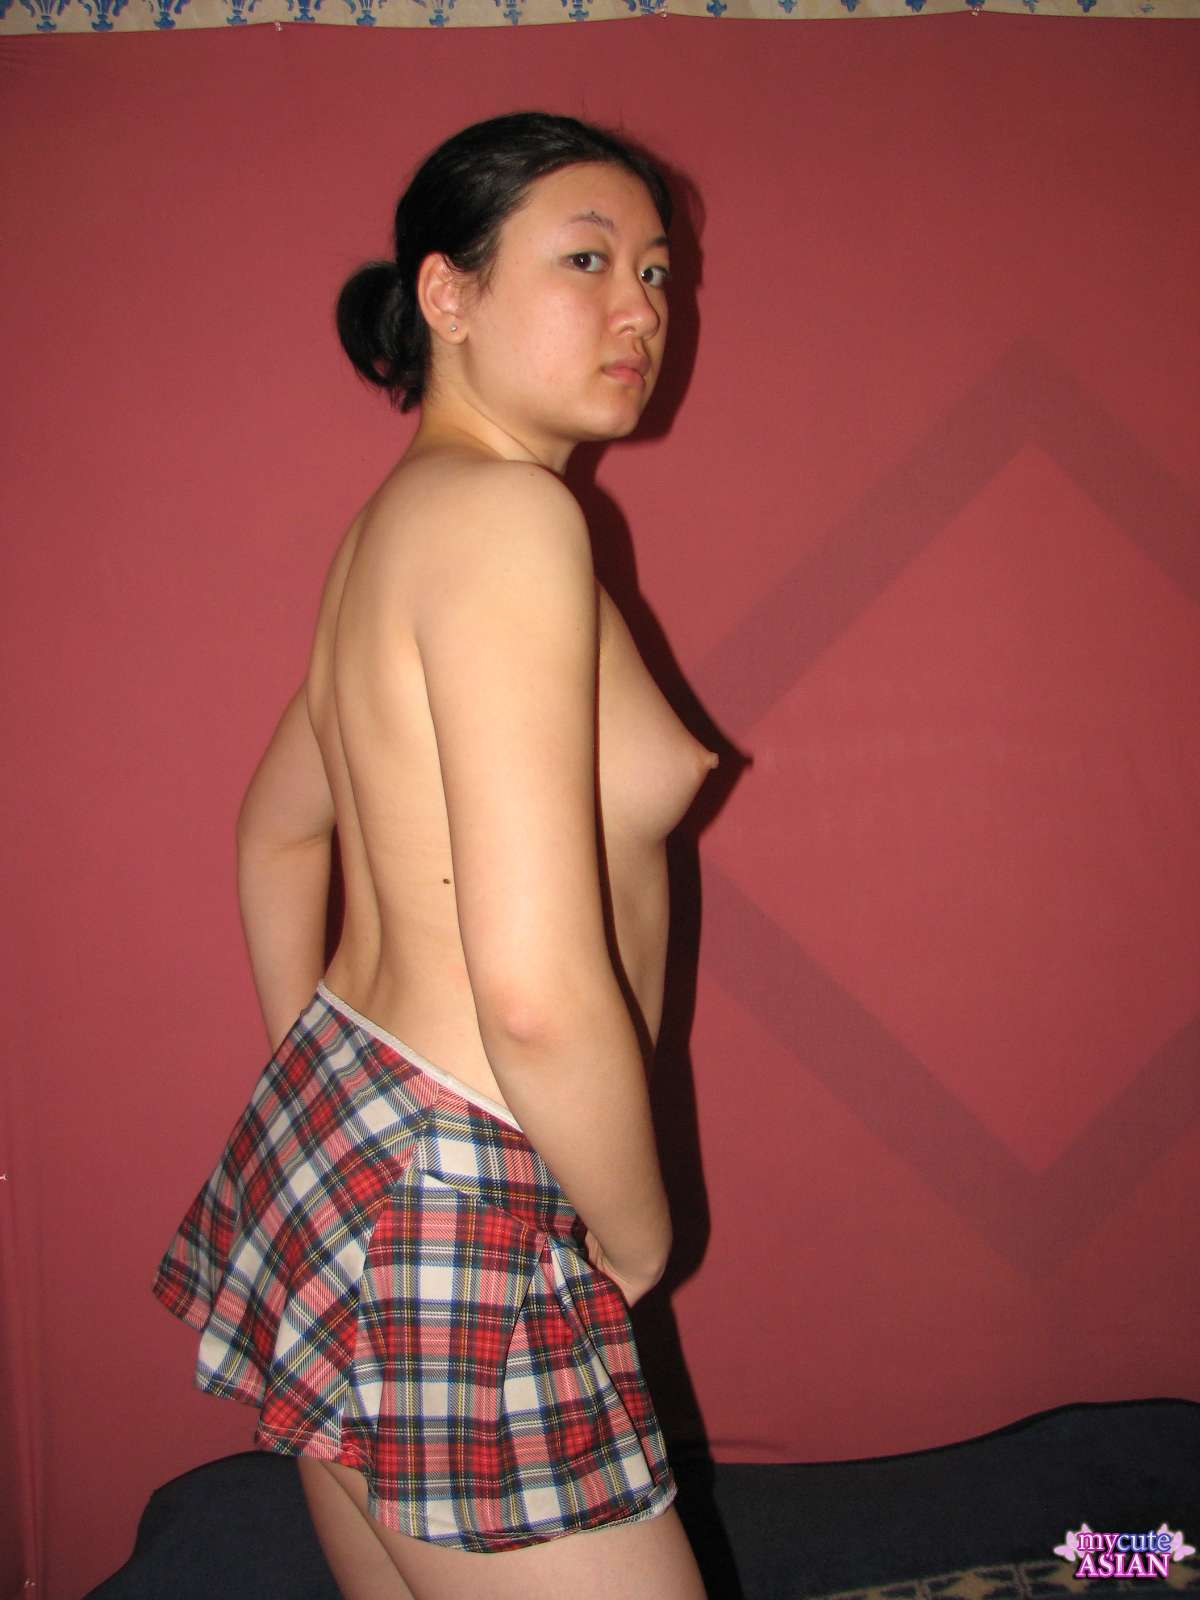 Chinese free photo slut young